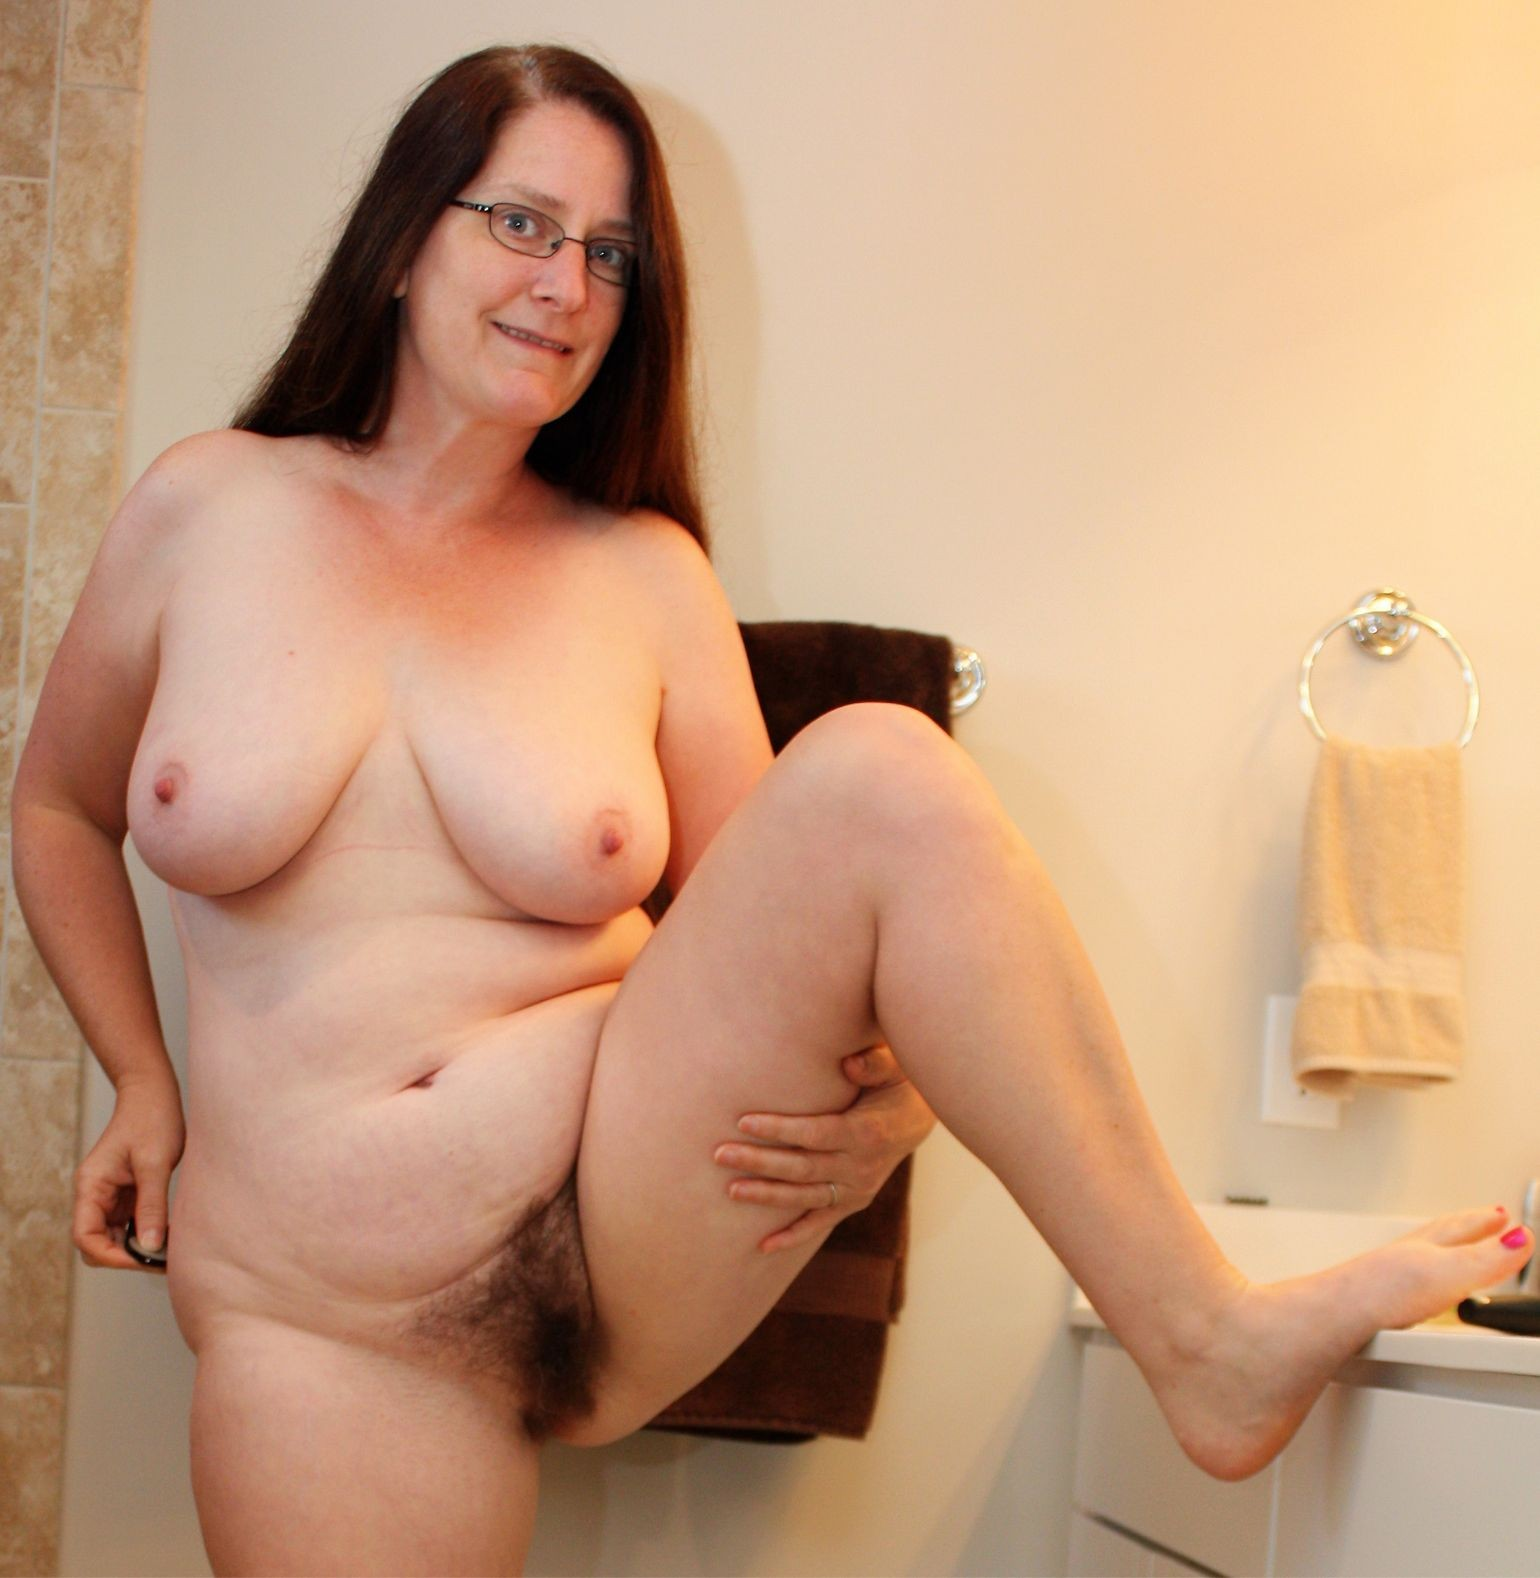 milf with glasses showing off hairy pussy real nudity pussy flash mature howife